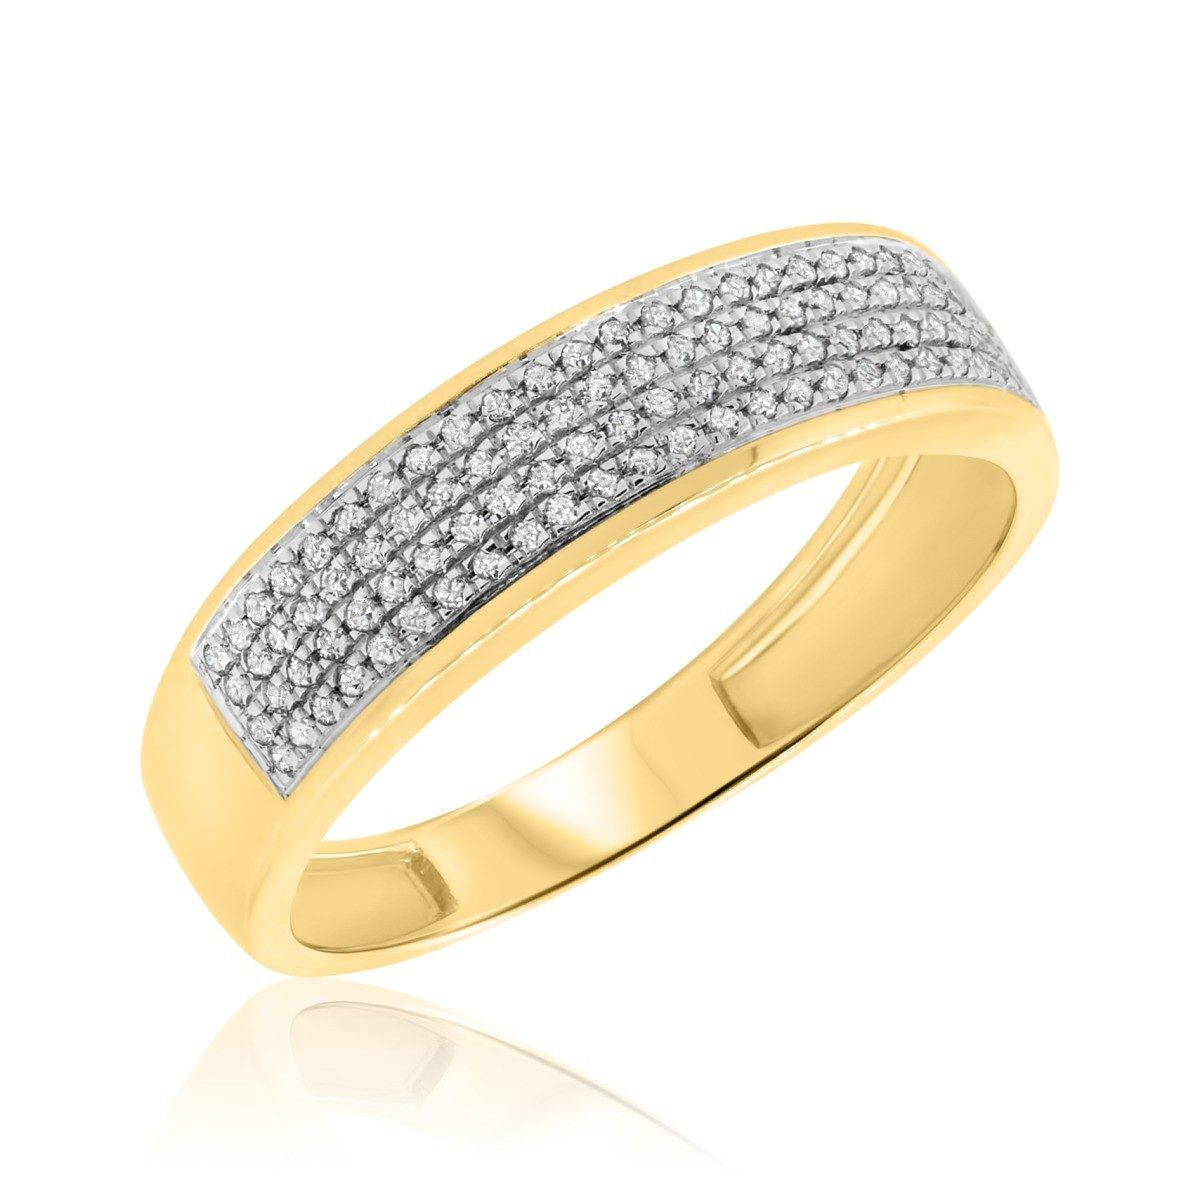 1/4 CT. T.W. Diamond Mens Wedding Band  14K Yellow Gold